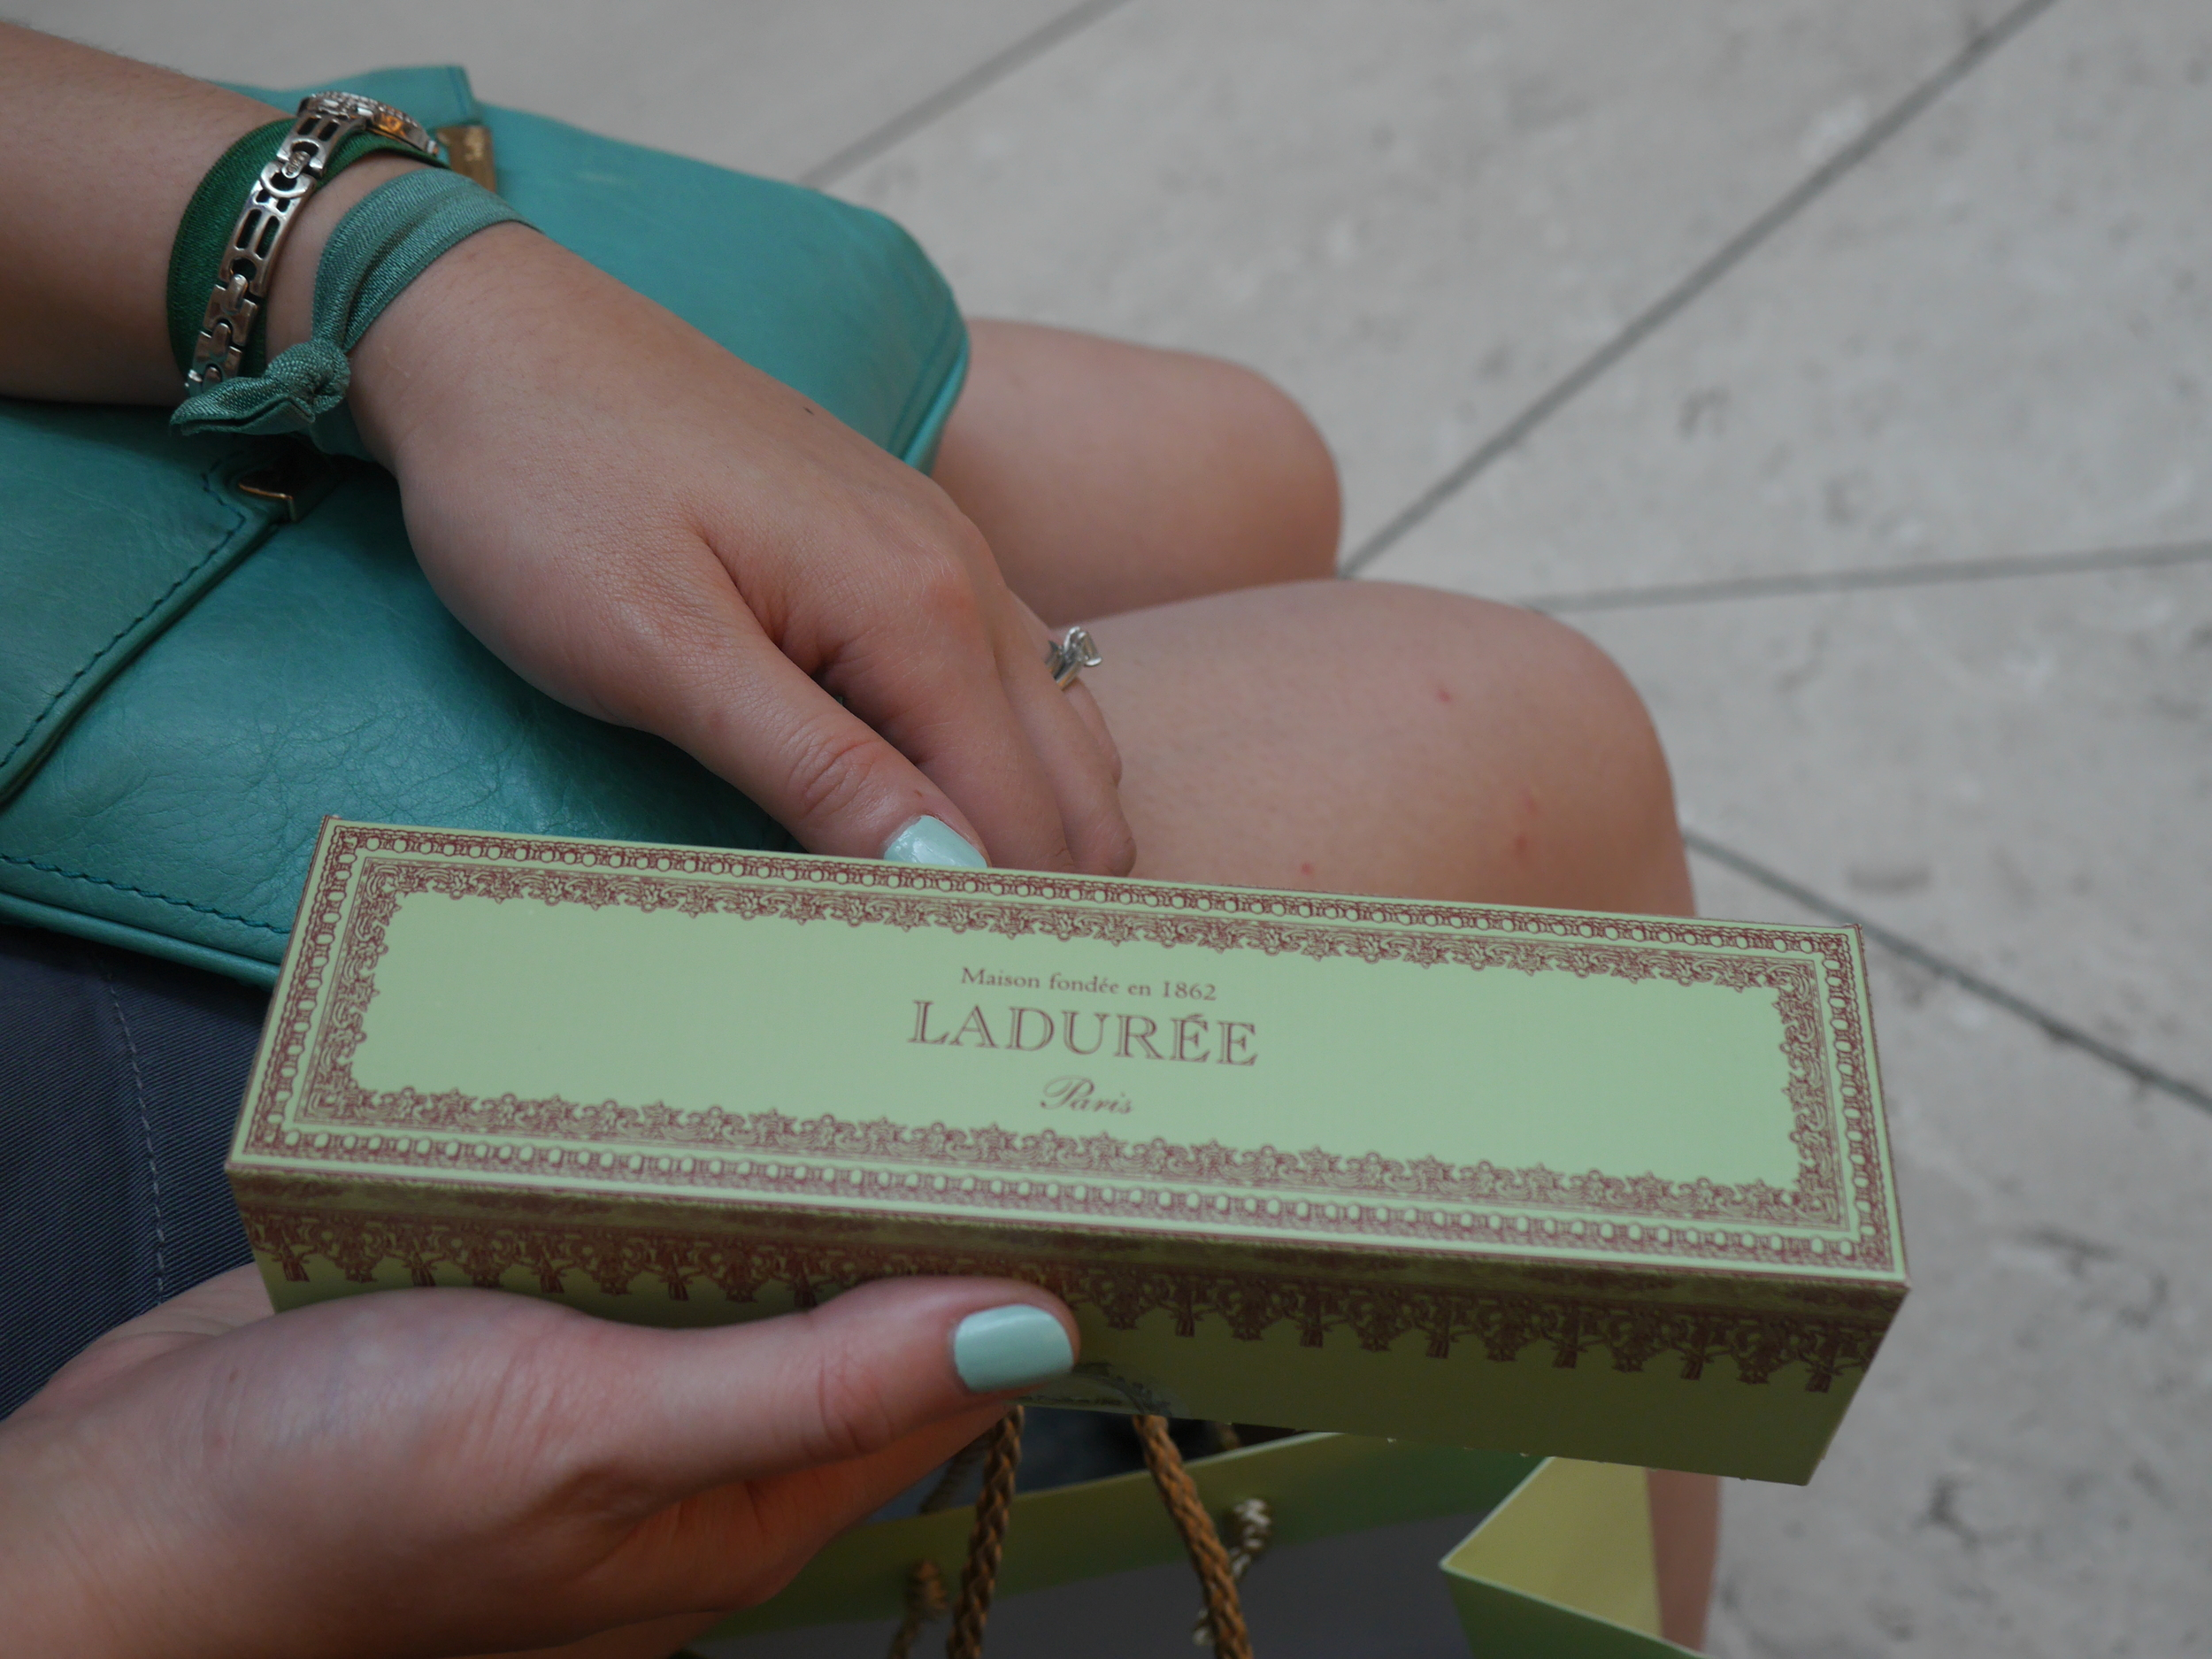 Still, the box was pretty. And Grace had this whole teal/green thing going on, so it was pretty much destined to be.